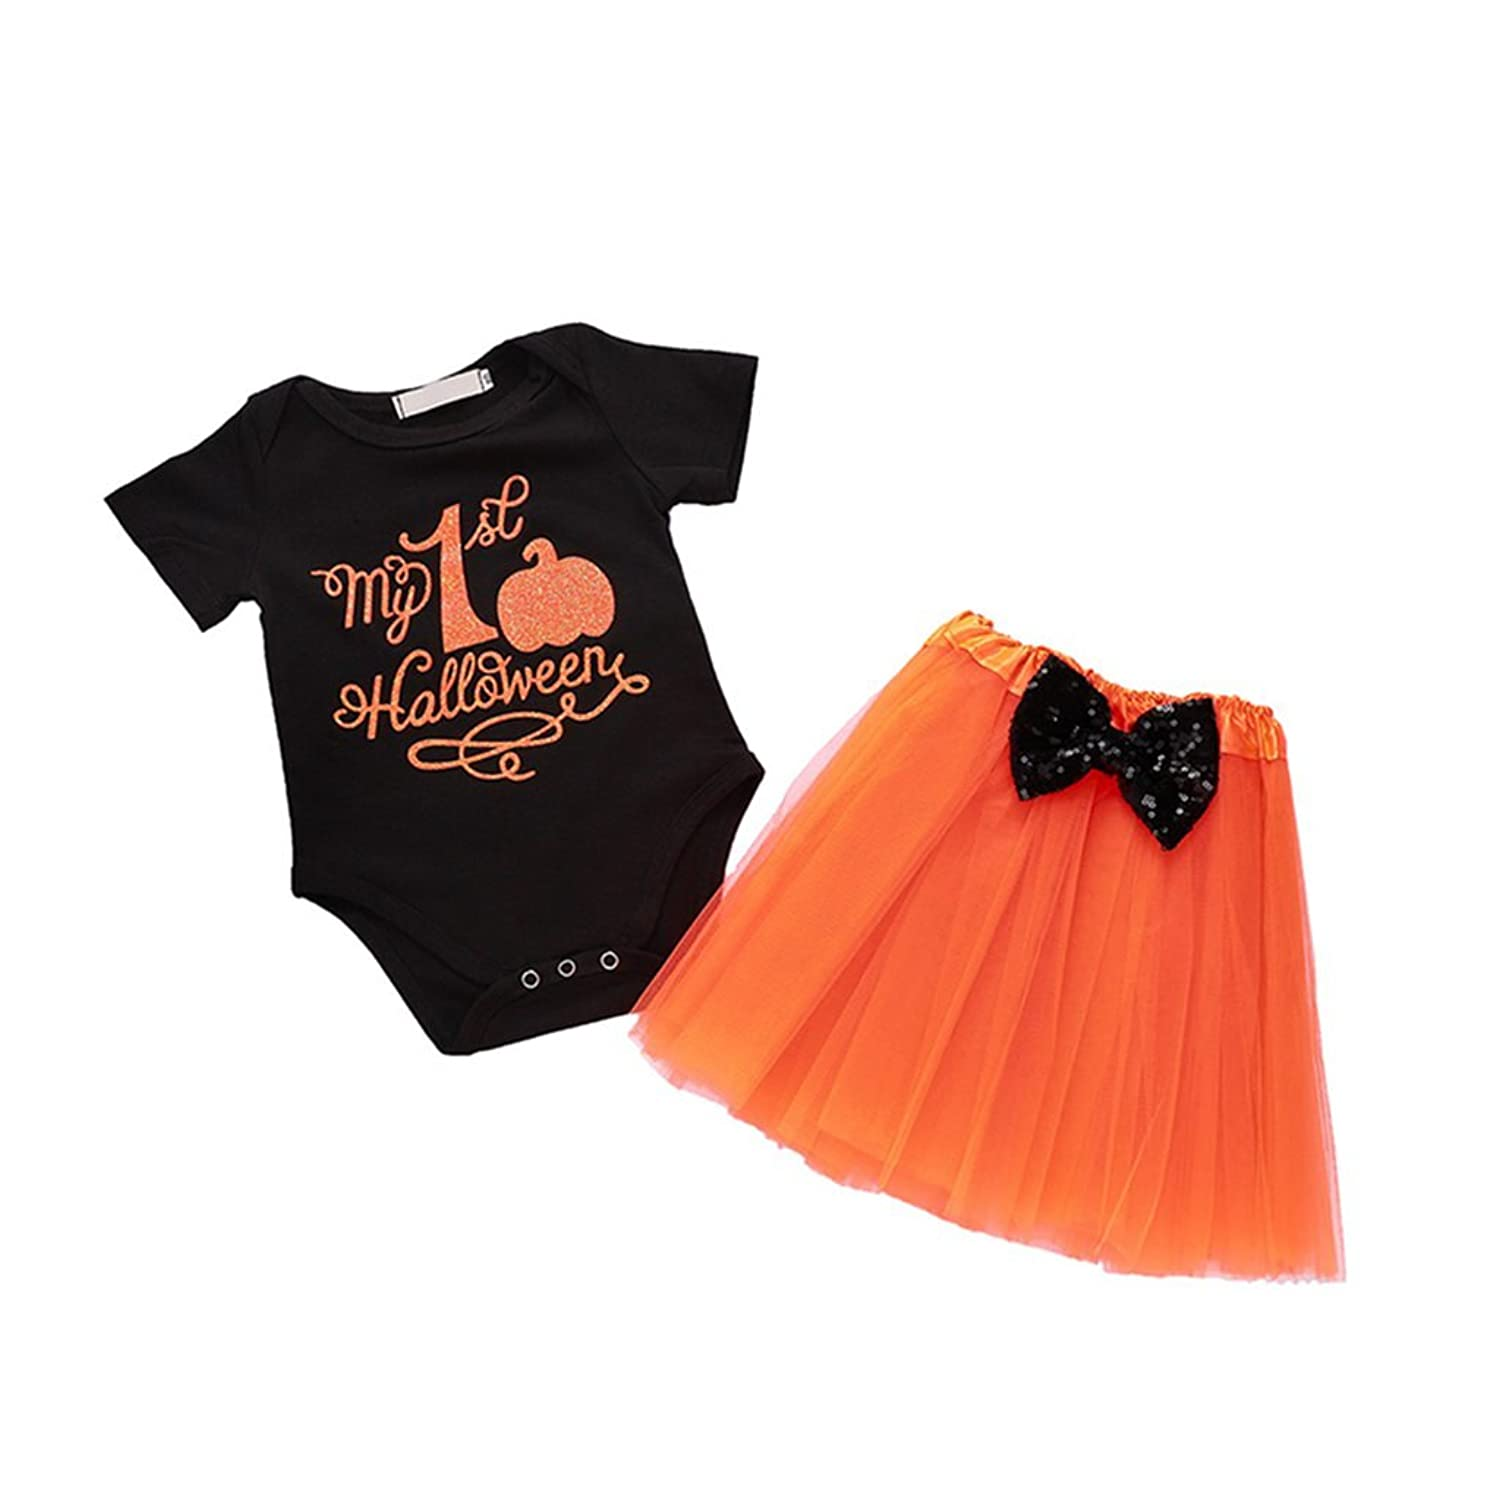 00e9a31df180 Baby Girls Pumpkin Halloween Romper Jumpsuit Tops +Tutu Bowknot Dress,  Cotton+Polyester, More Skin Friendly, Brings Your Kids Ultra Comfortable  Feelings